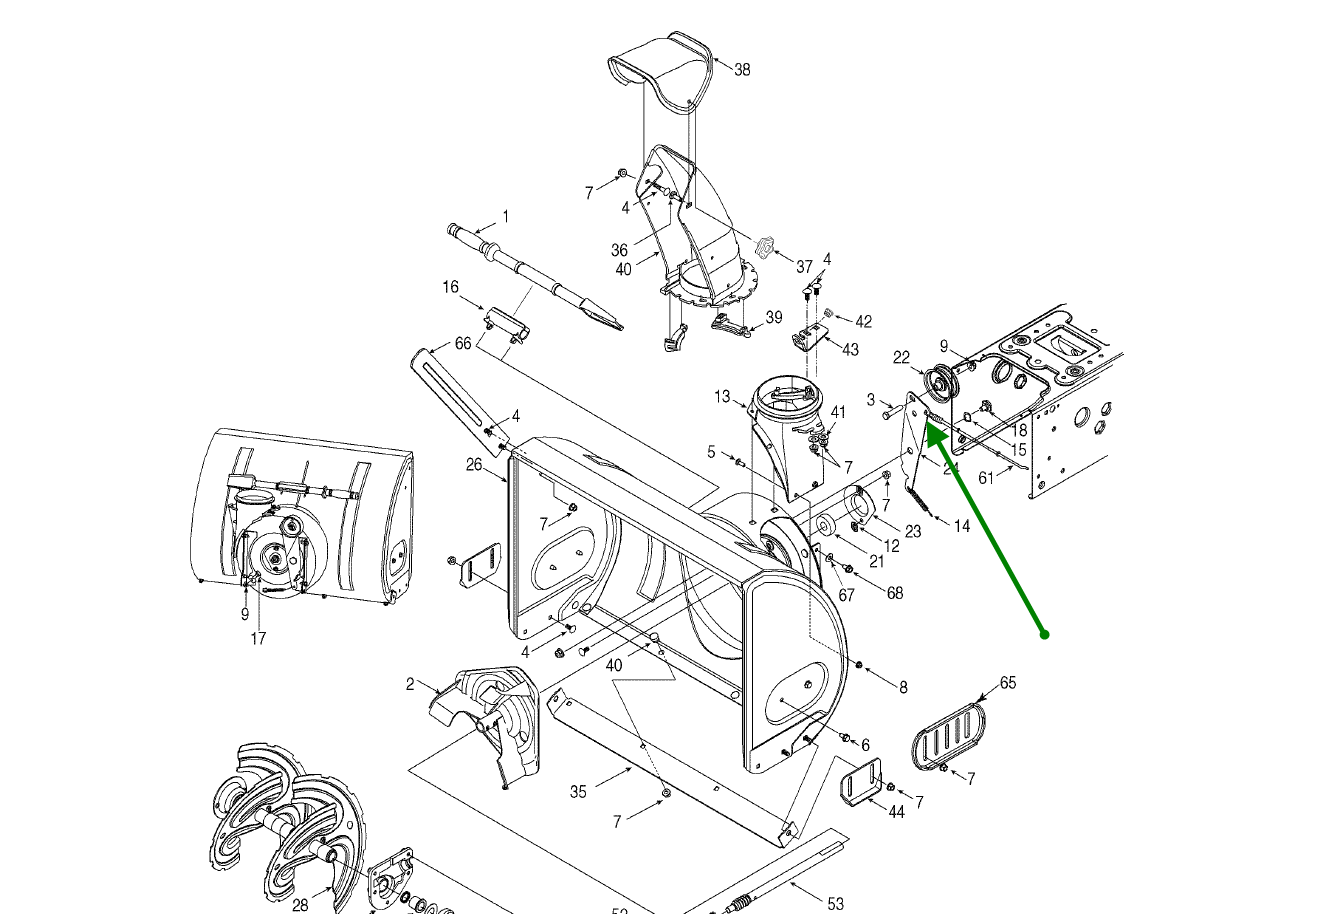 gator wiring diagram with John Deere Trs27 Parts Diagram on Wiring Diagram in addition Elsystem likewise T1653592 1972 ford f100 alternator voltage furthermore John Deere Trs27 Parts Diagram moreover X540 John Deere Fuse Box.